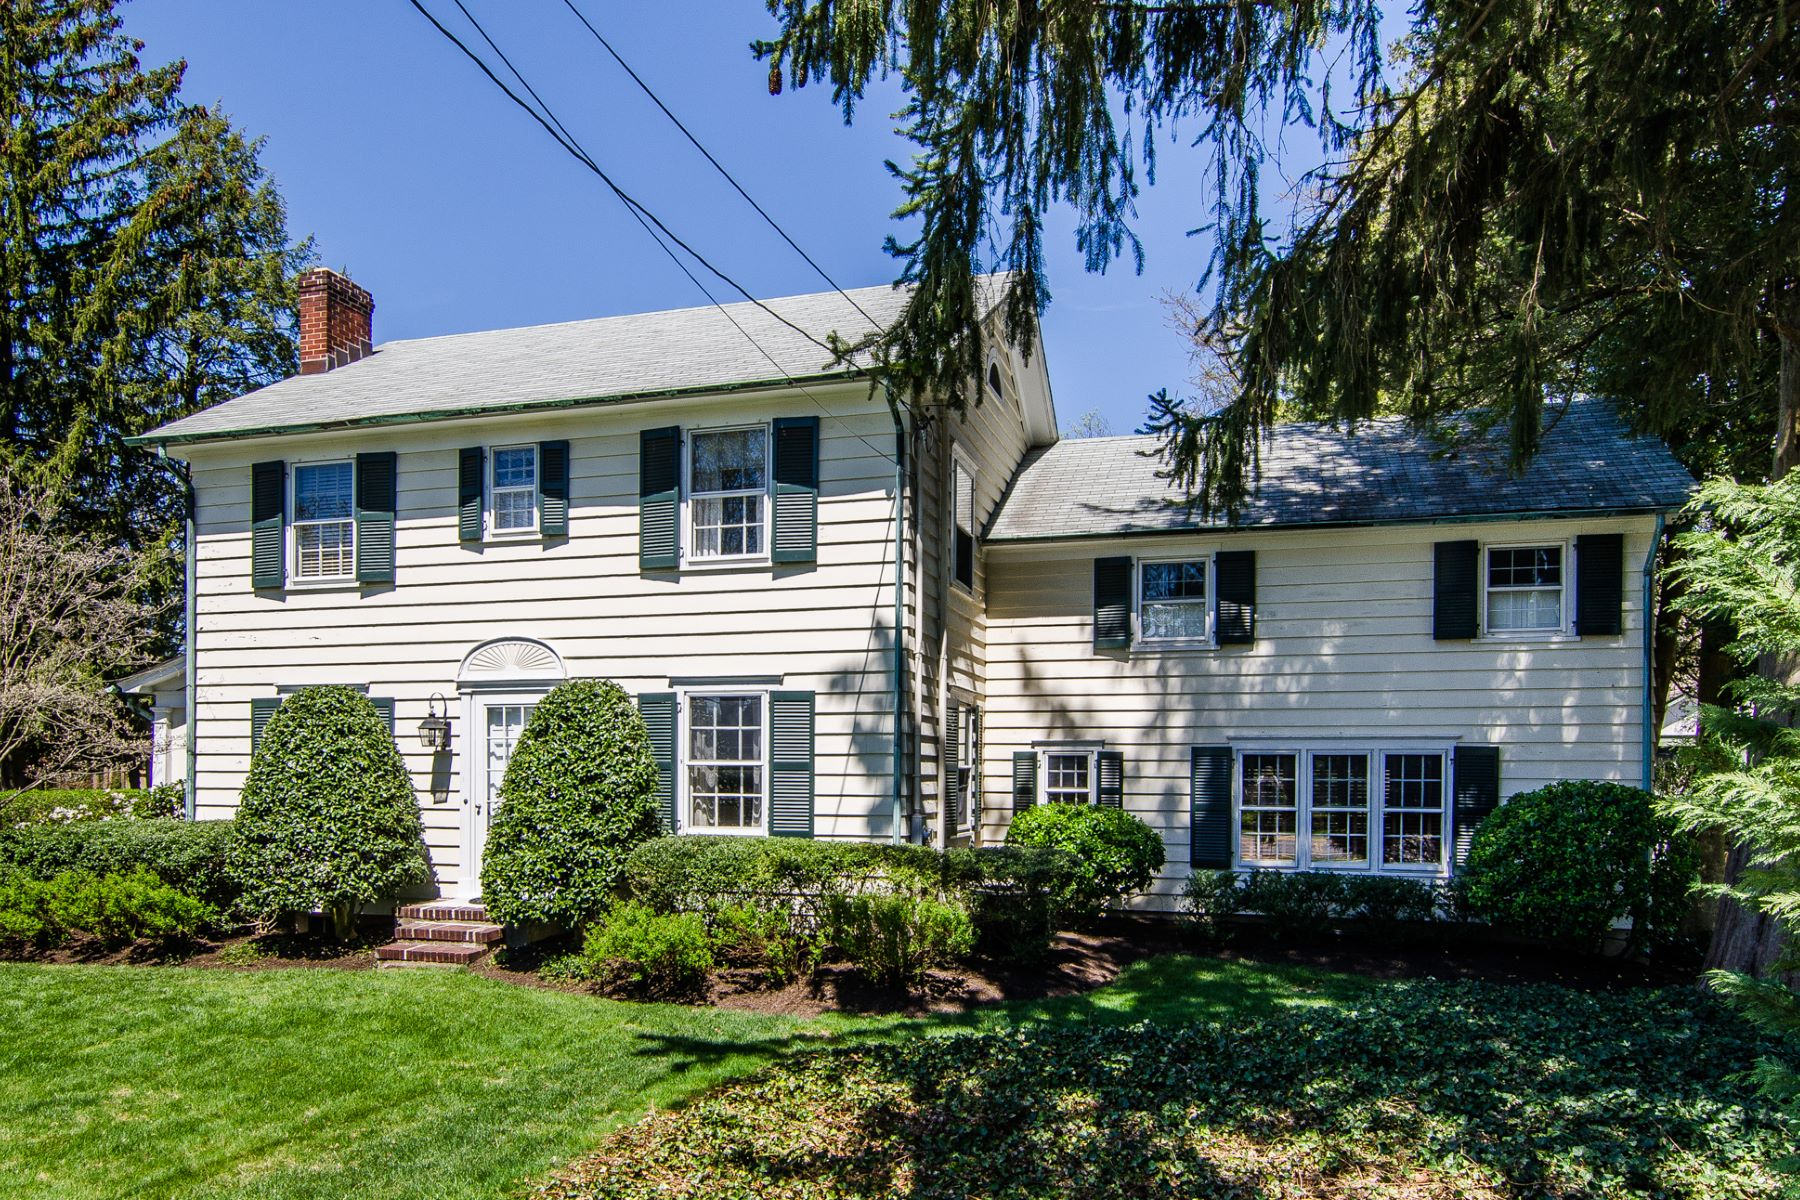 Single Family Home for Sale at Vintage Charm and Modern Convenience in Cranbury 10 Cranbury Neck Road Cranbury, New Jersey 08512 United States